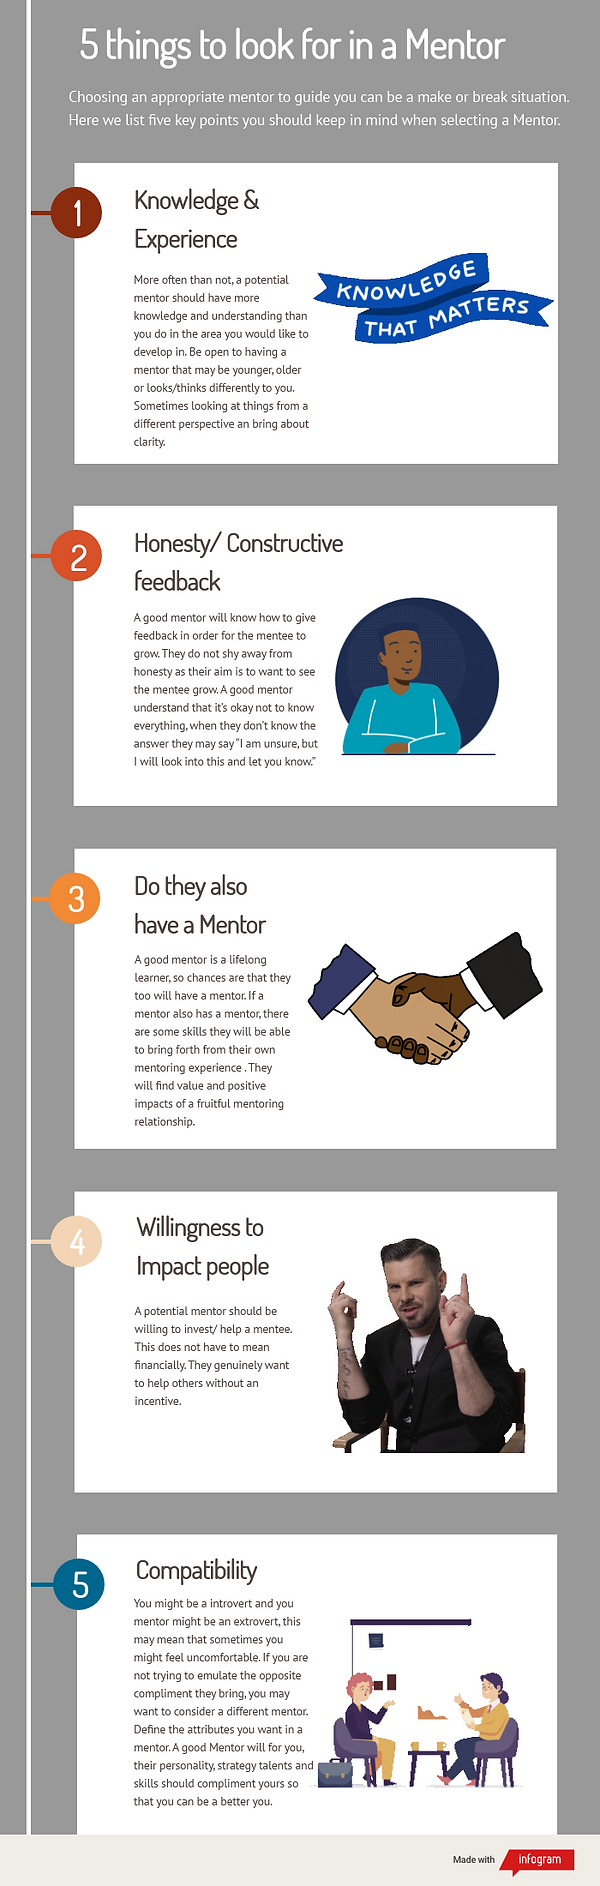 five-things-to-look-for-in-a-mentor.png